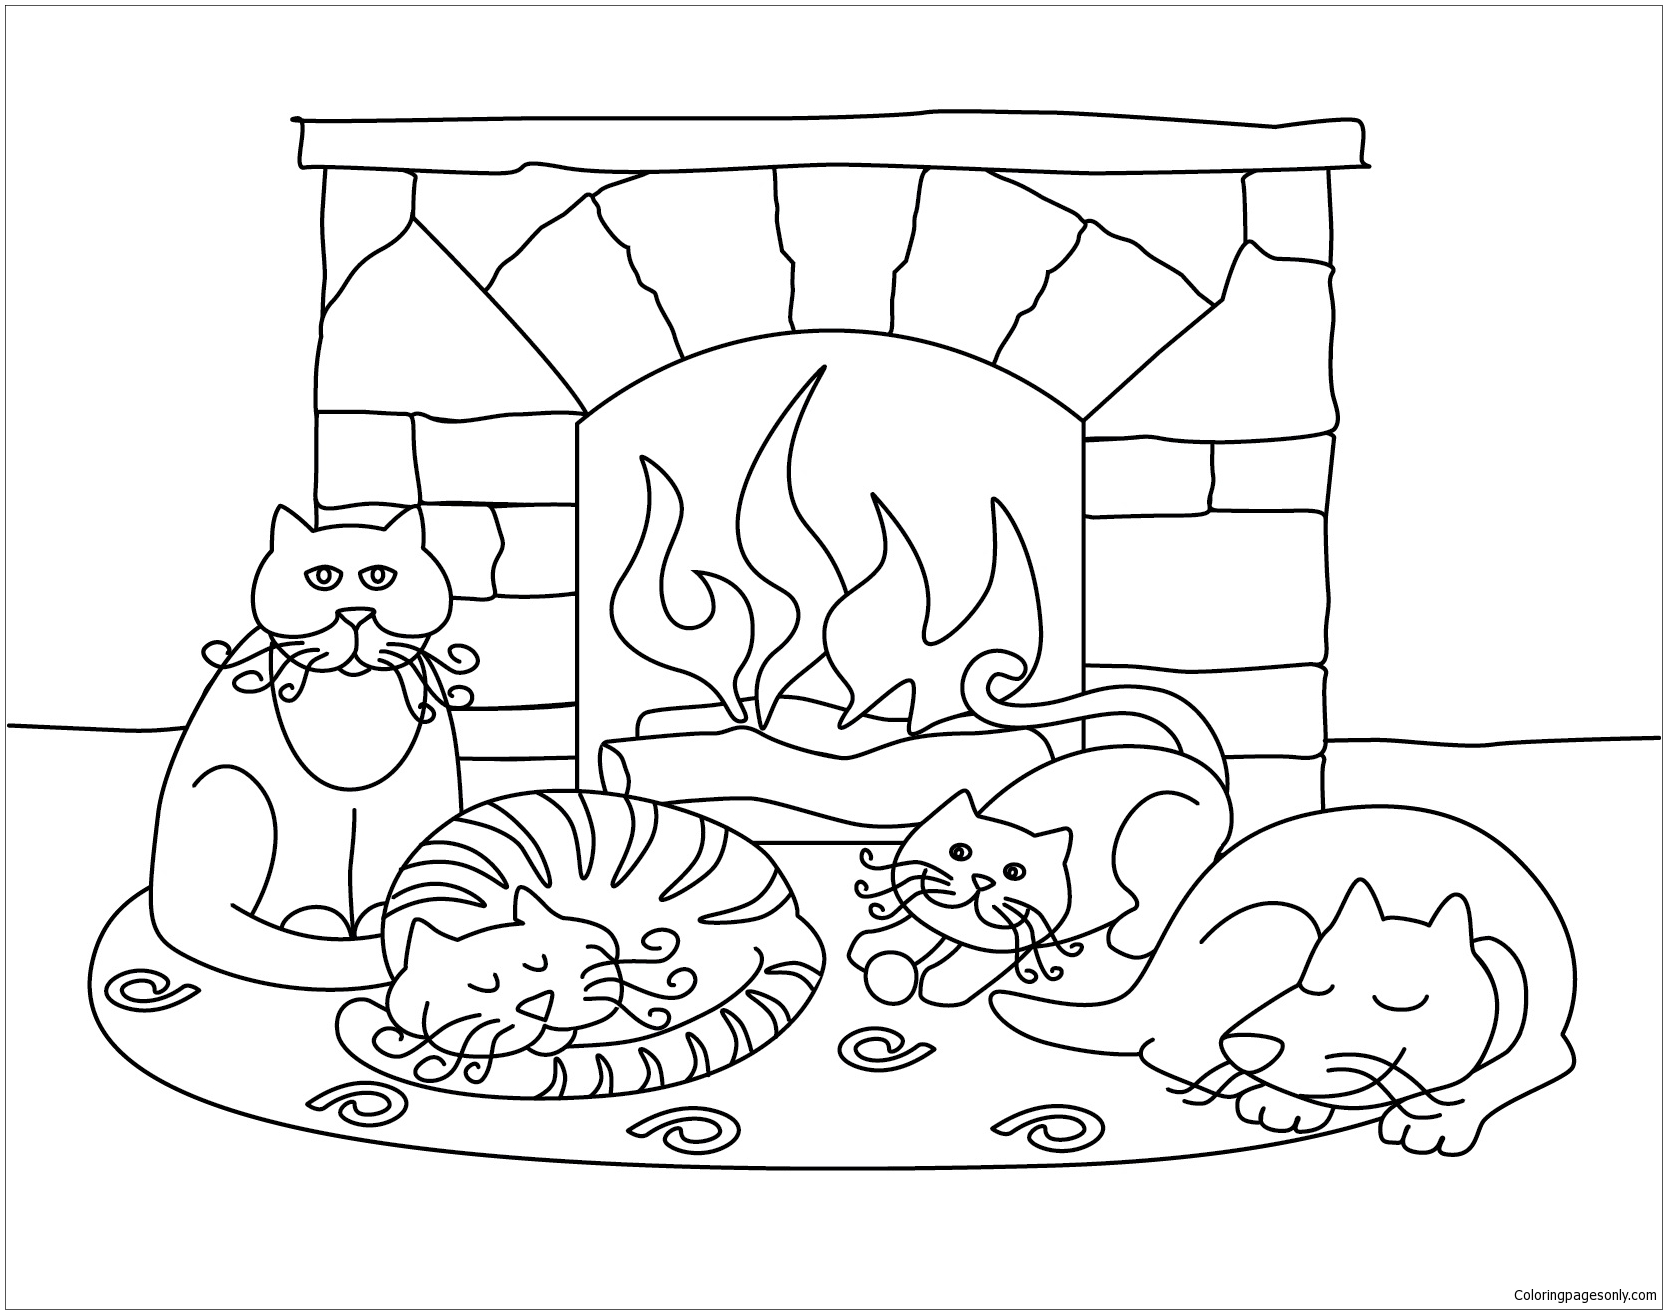 winter animal coloring pages free printable winter coloring pages for kids animal pages winter coloring